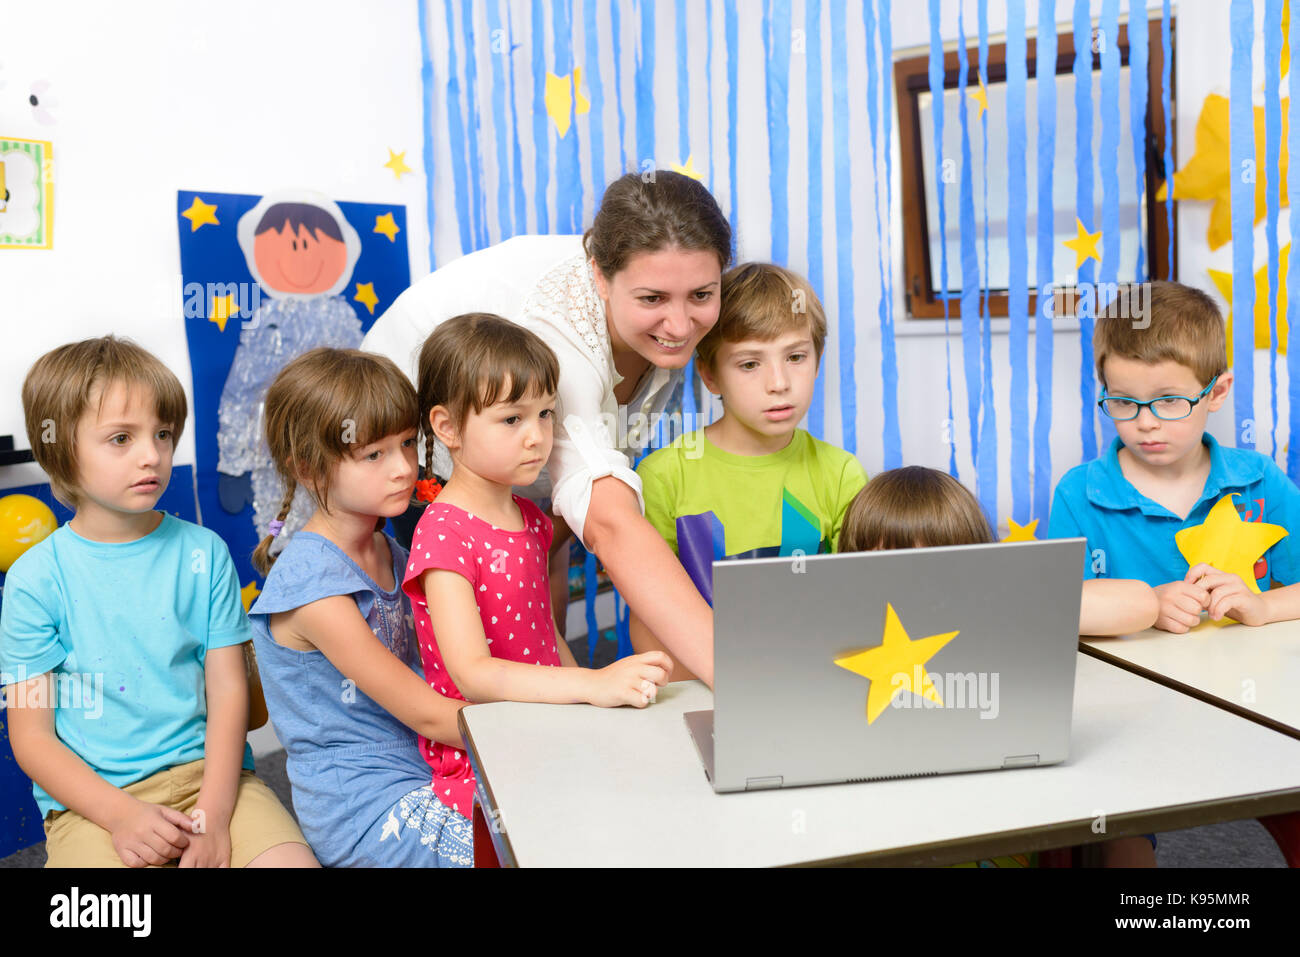 Educator surrounded by  kids at kindergarten using a laptop - Stock Image